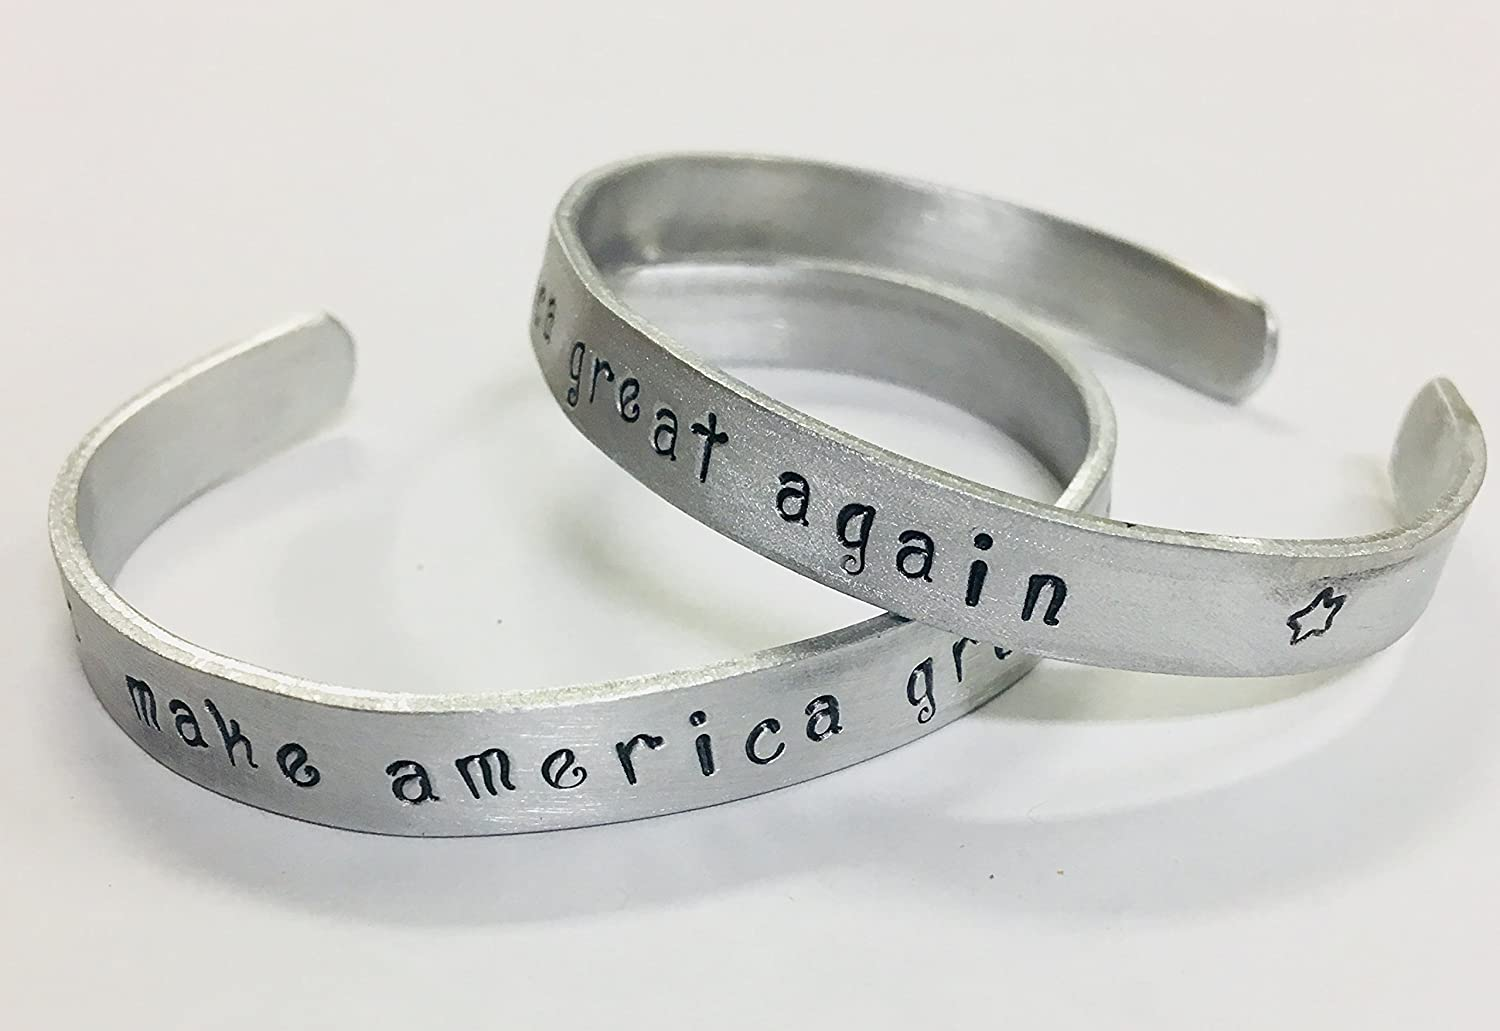 Make America Great Again, Women's Bracelet Trump Republican Supporter Election 2016, non tarnish aluminum cuff bracelet